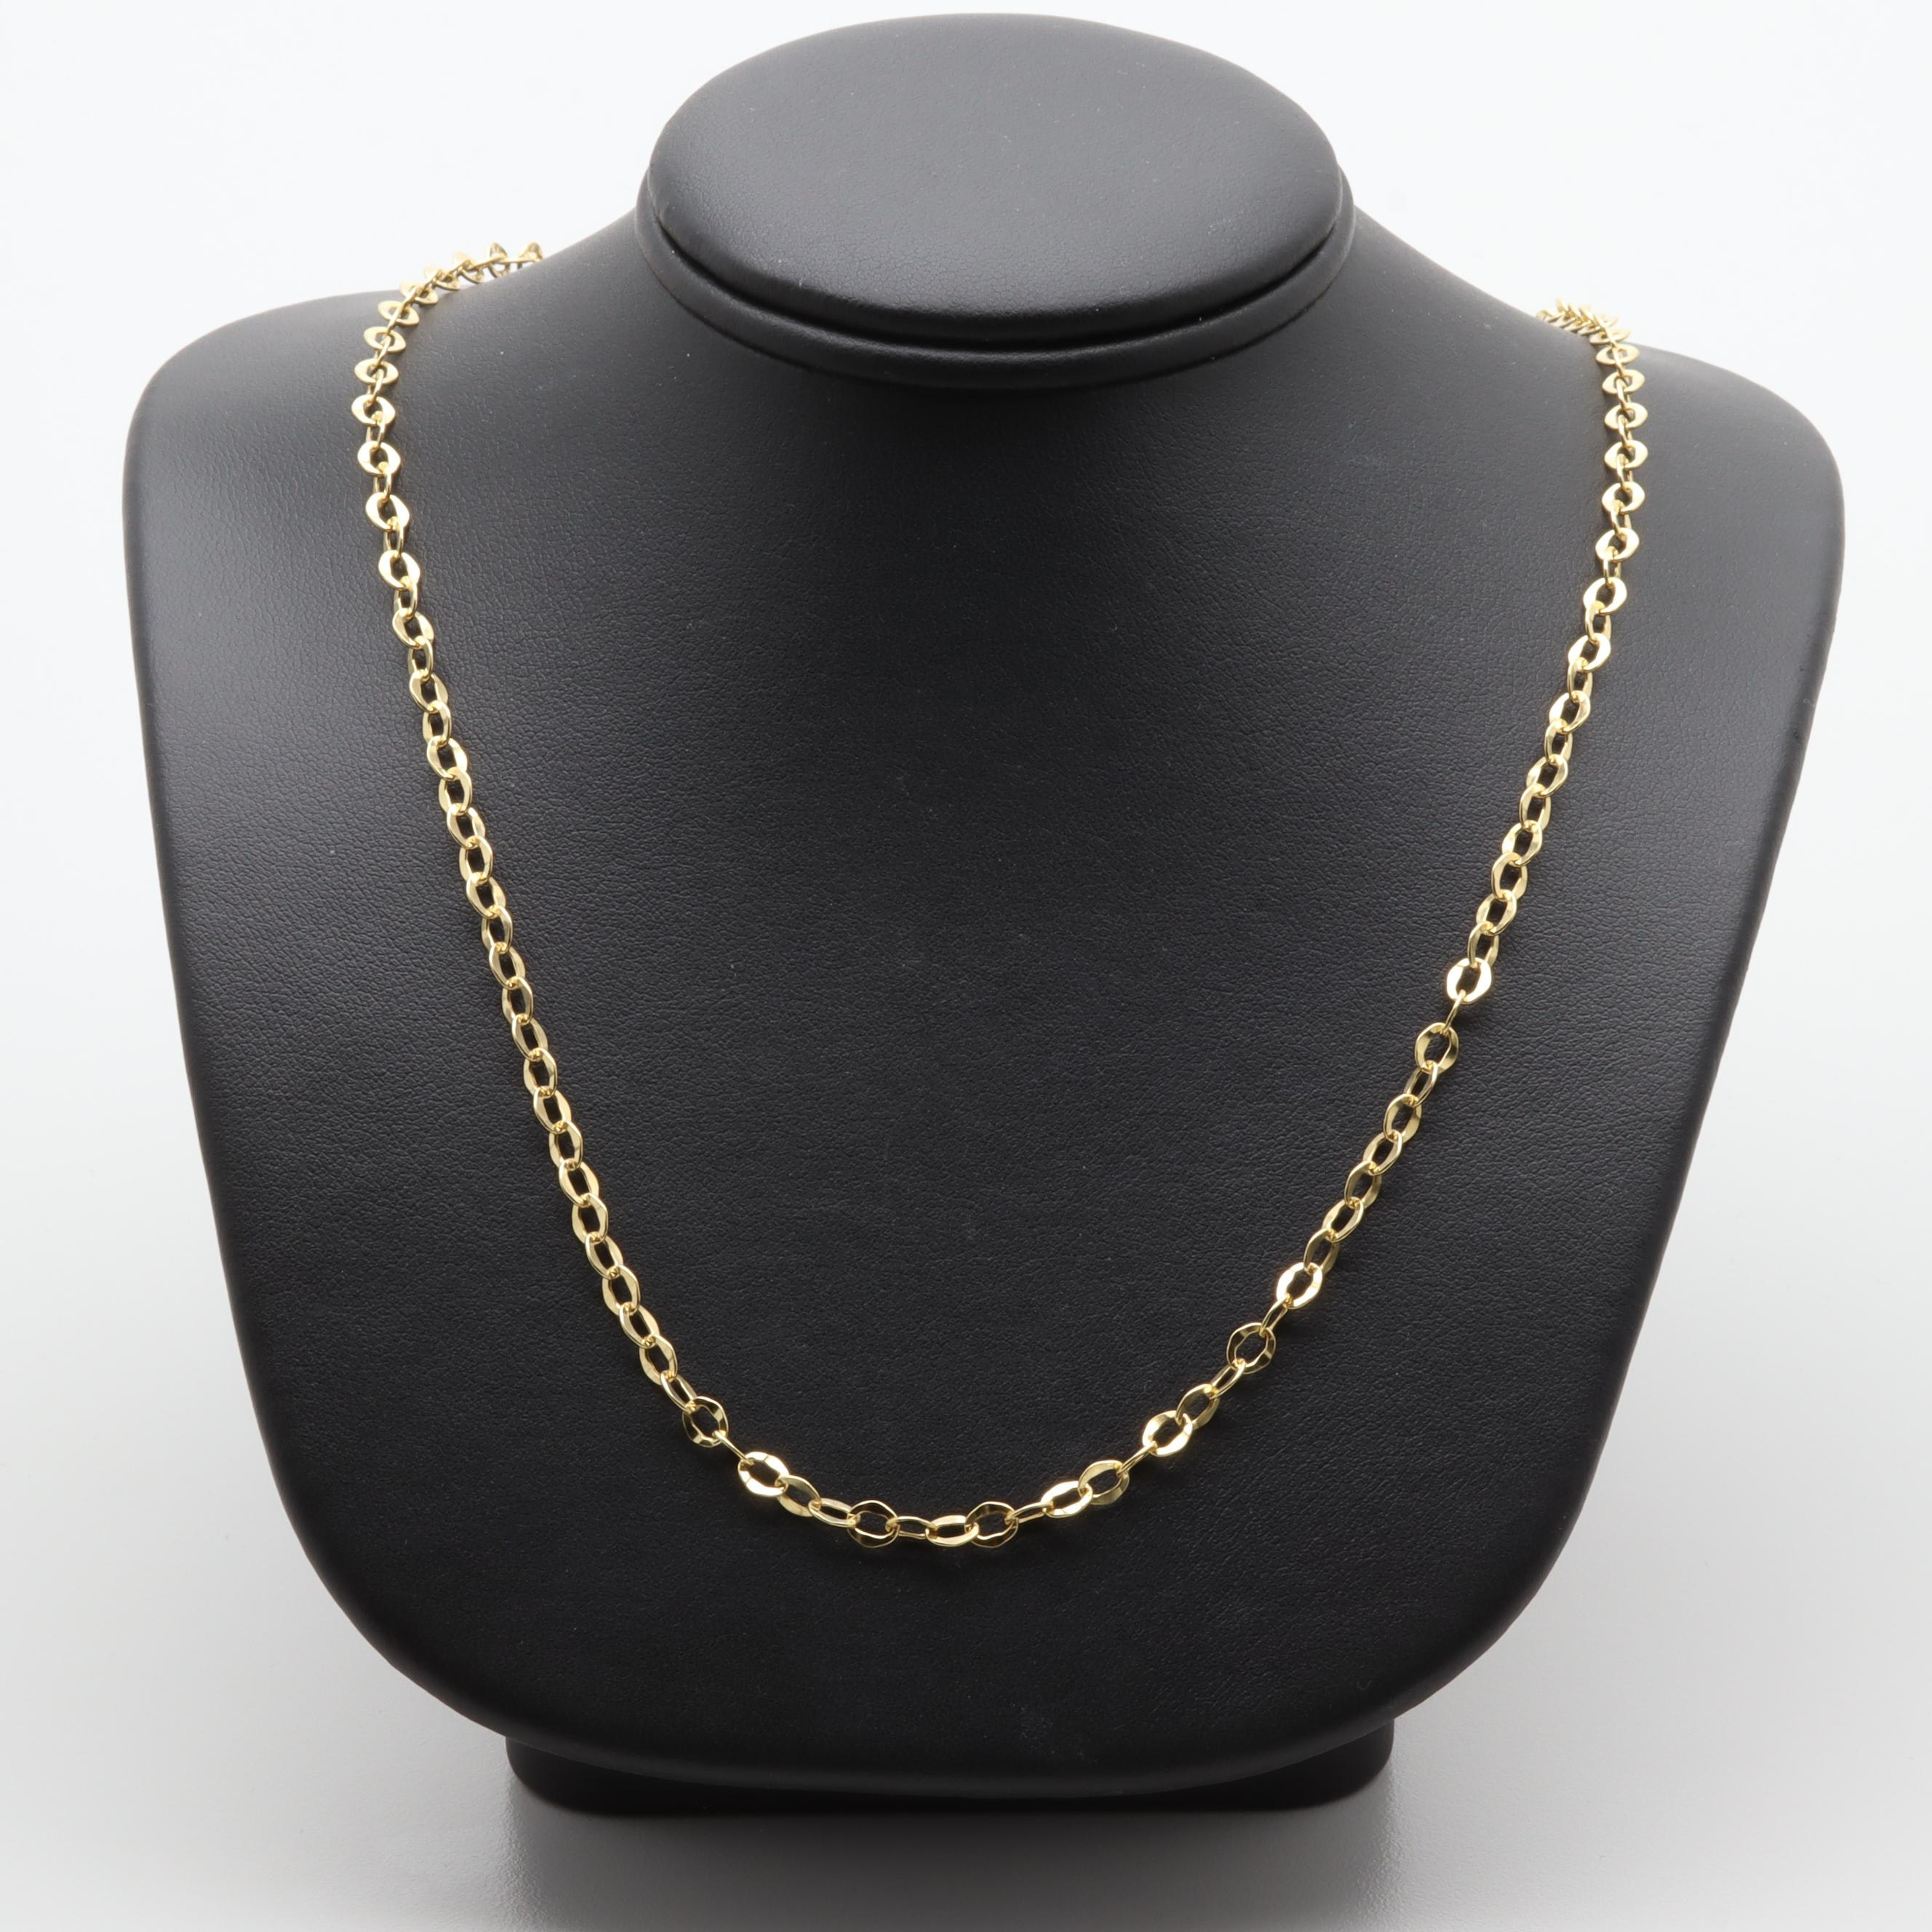 Italian 14K Yellow Gold Chain Link Necklace